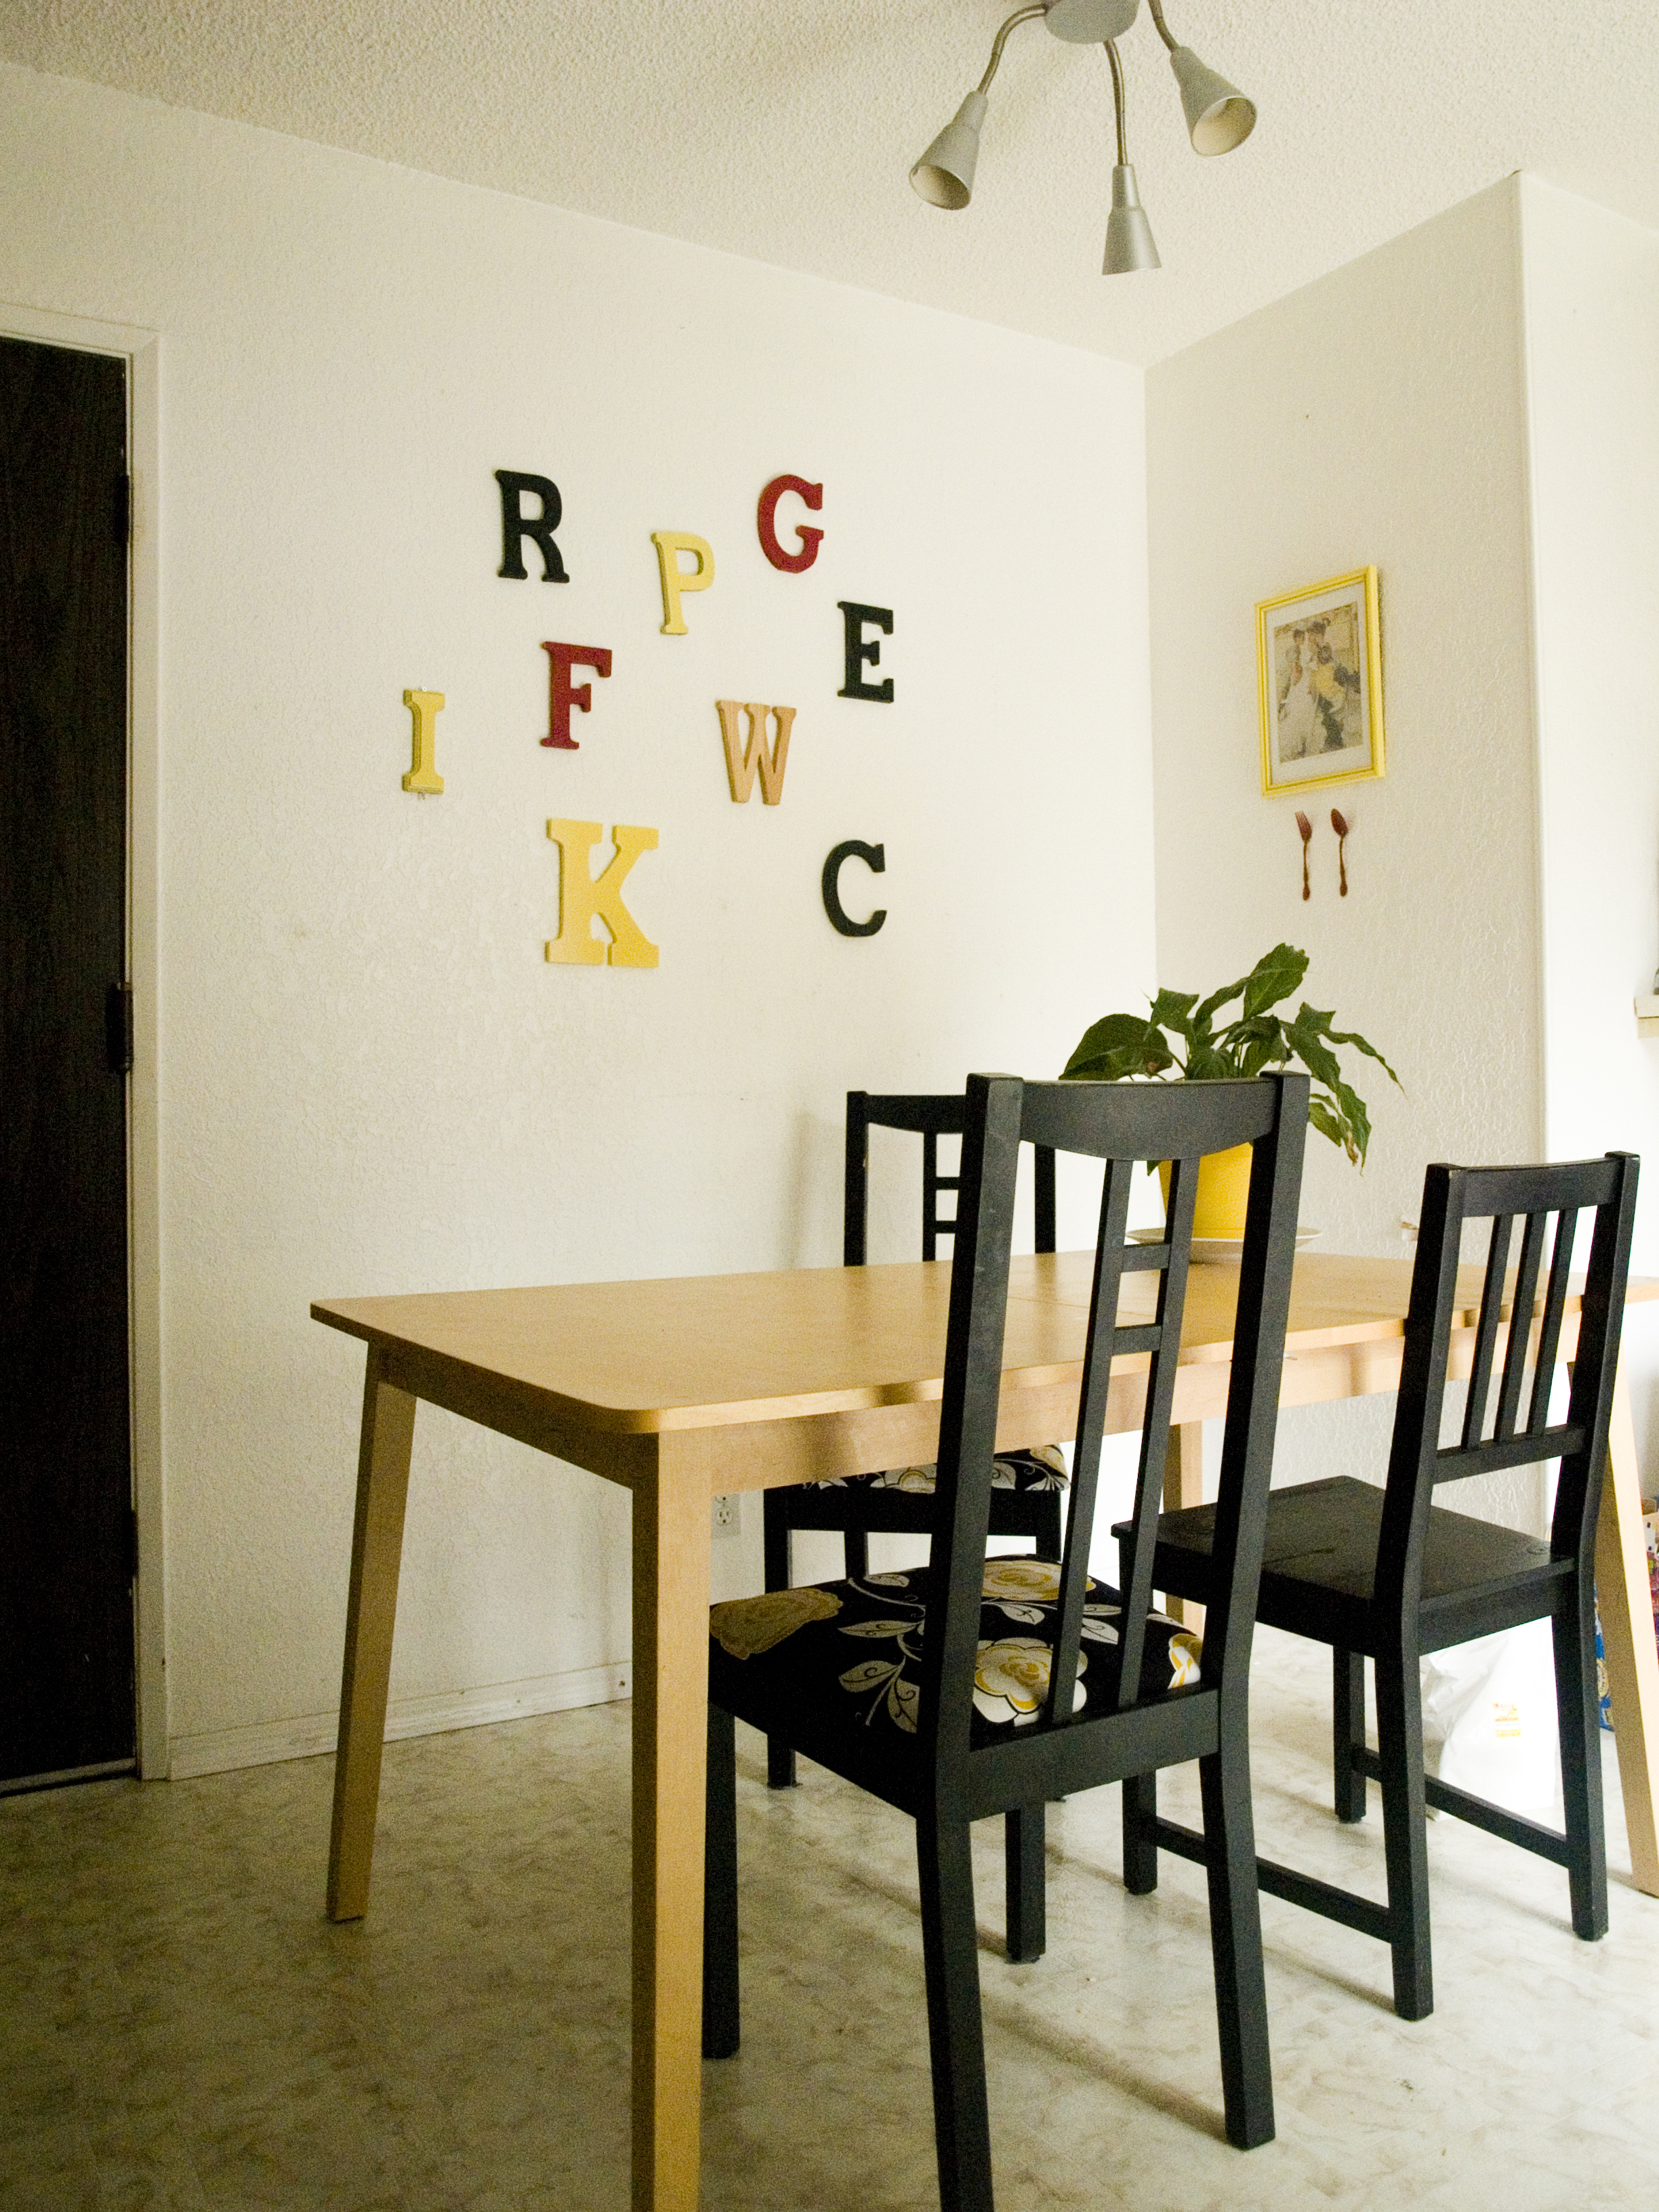 Swell o yellow dining room upgrade retrohipmama for Dining room upgrades